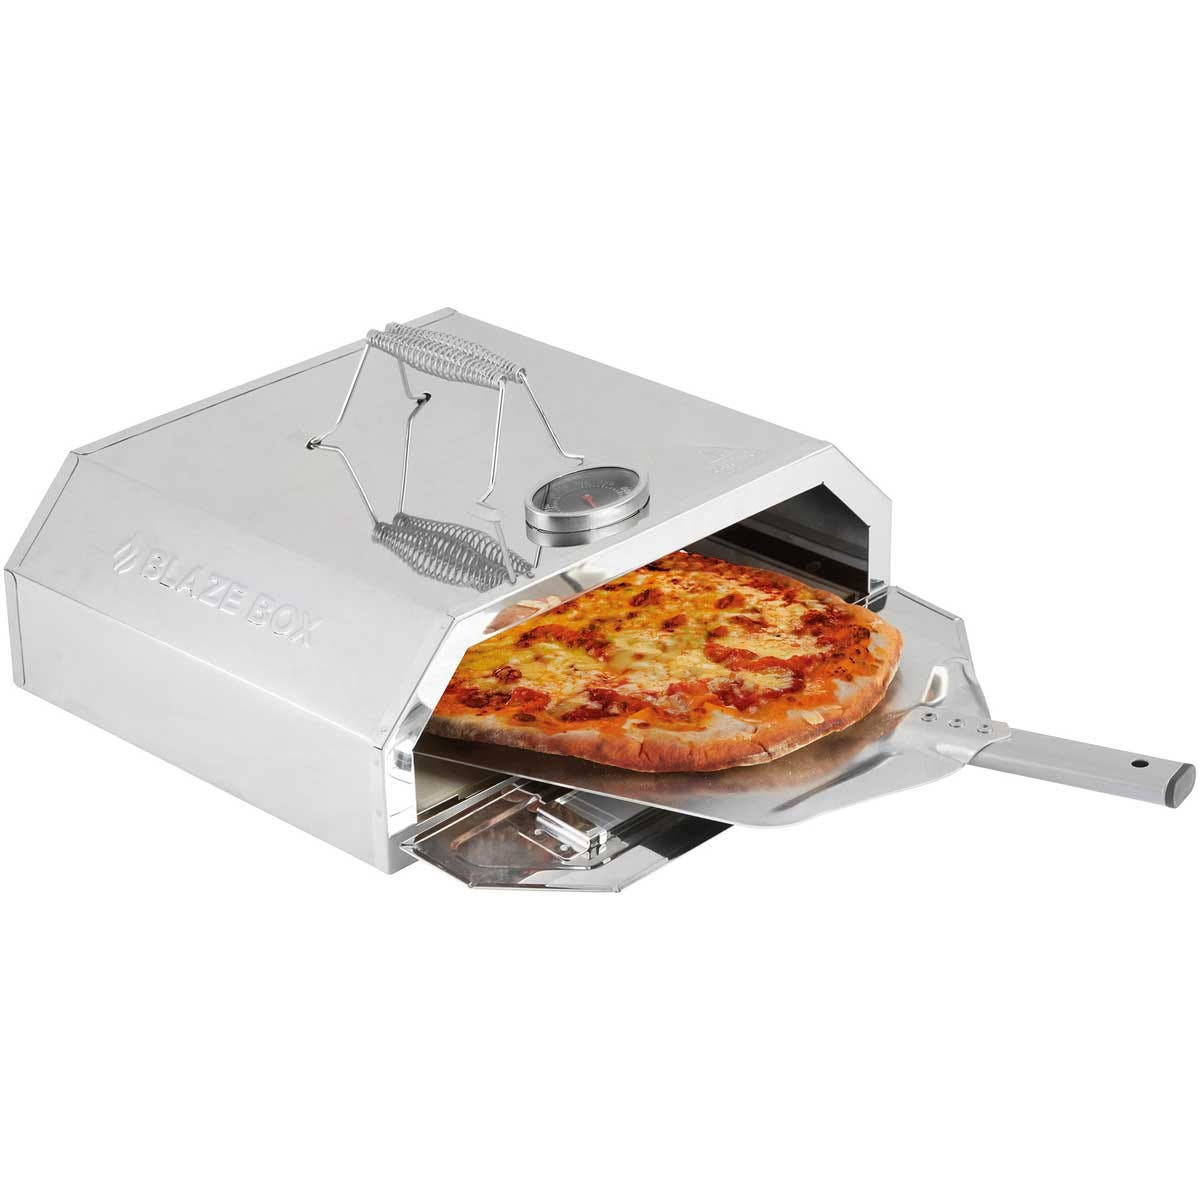 Garden Gear Blaze Box Pizza Oven with Paddle